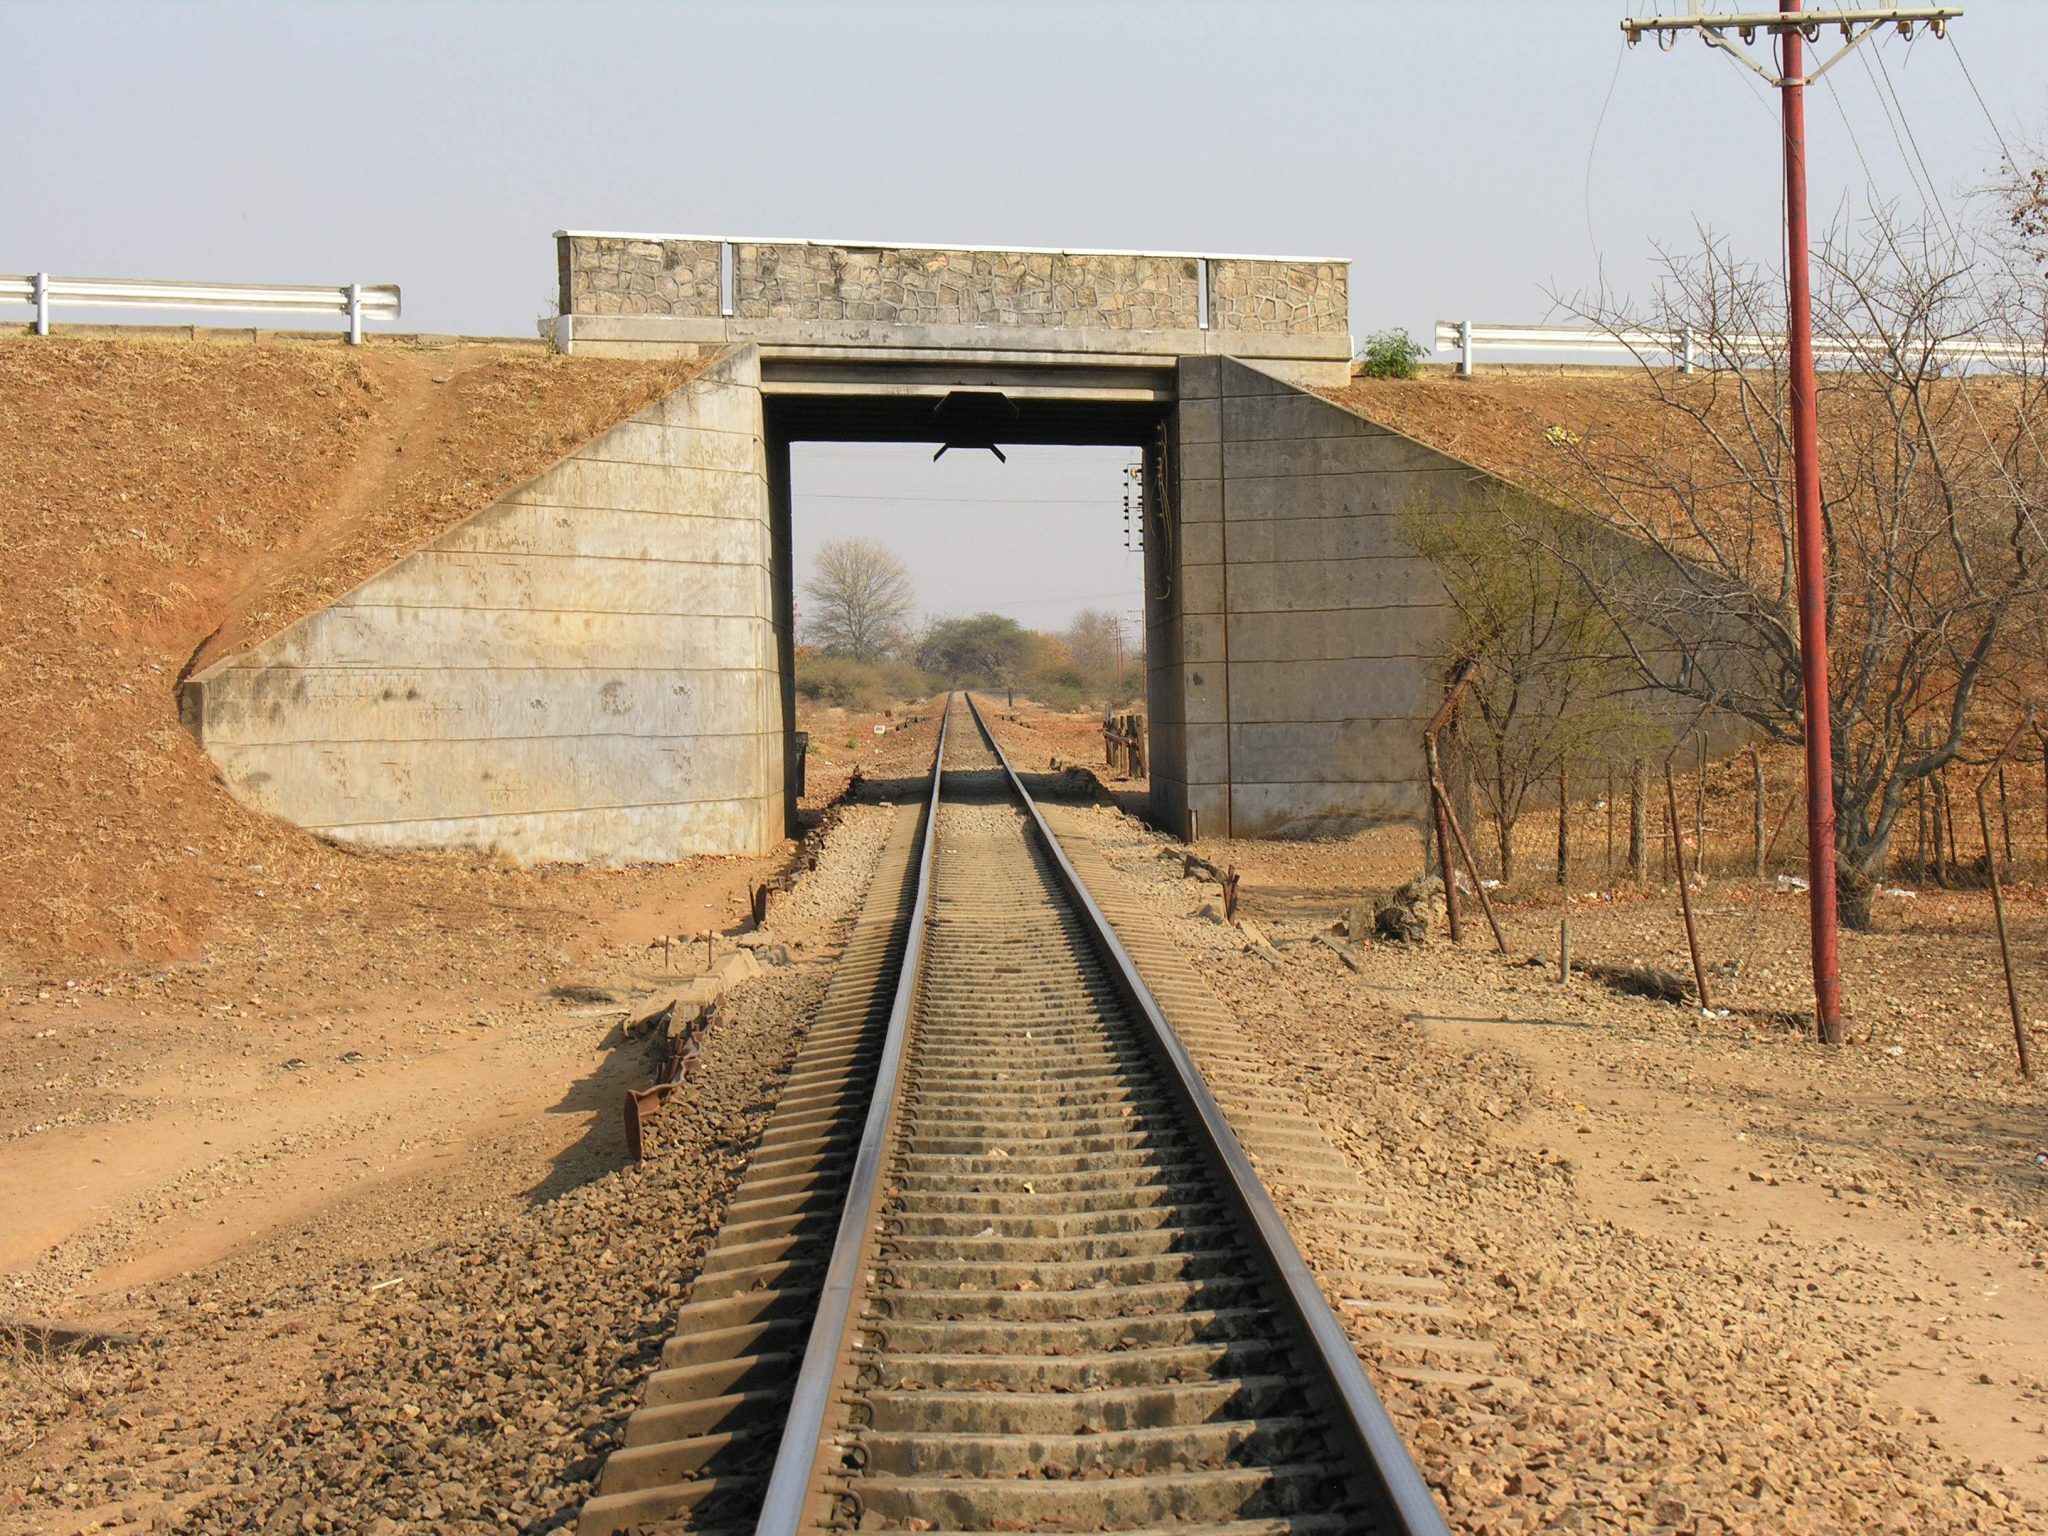 Rutenga-Road-over-Rail-Bridge-2-R__1440479612_154.66.113.34